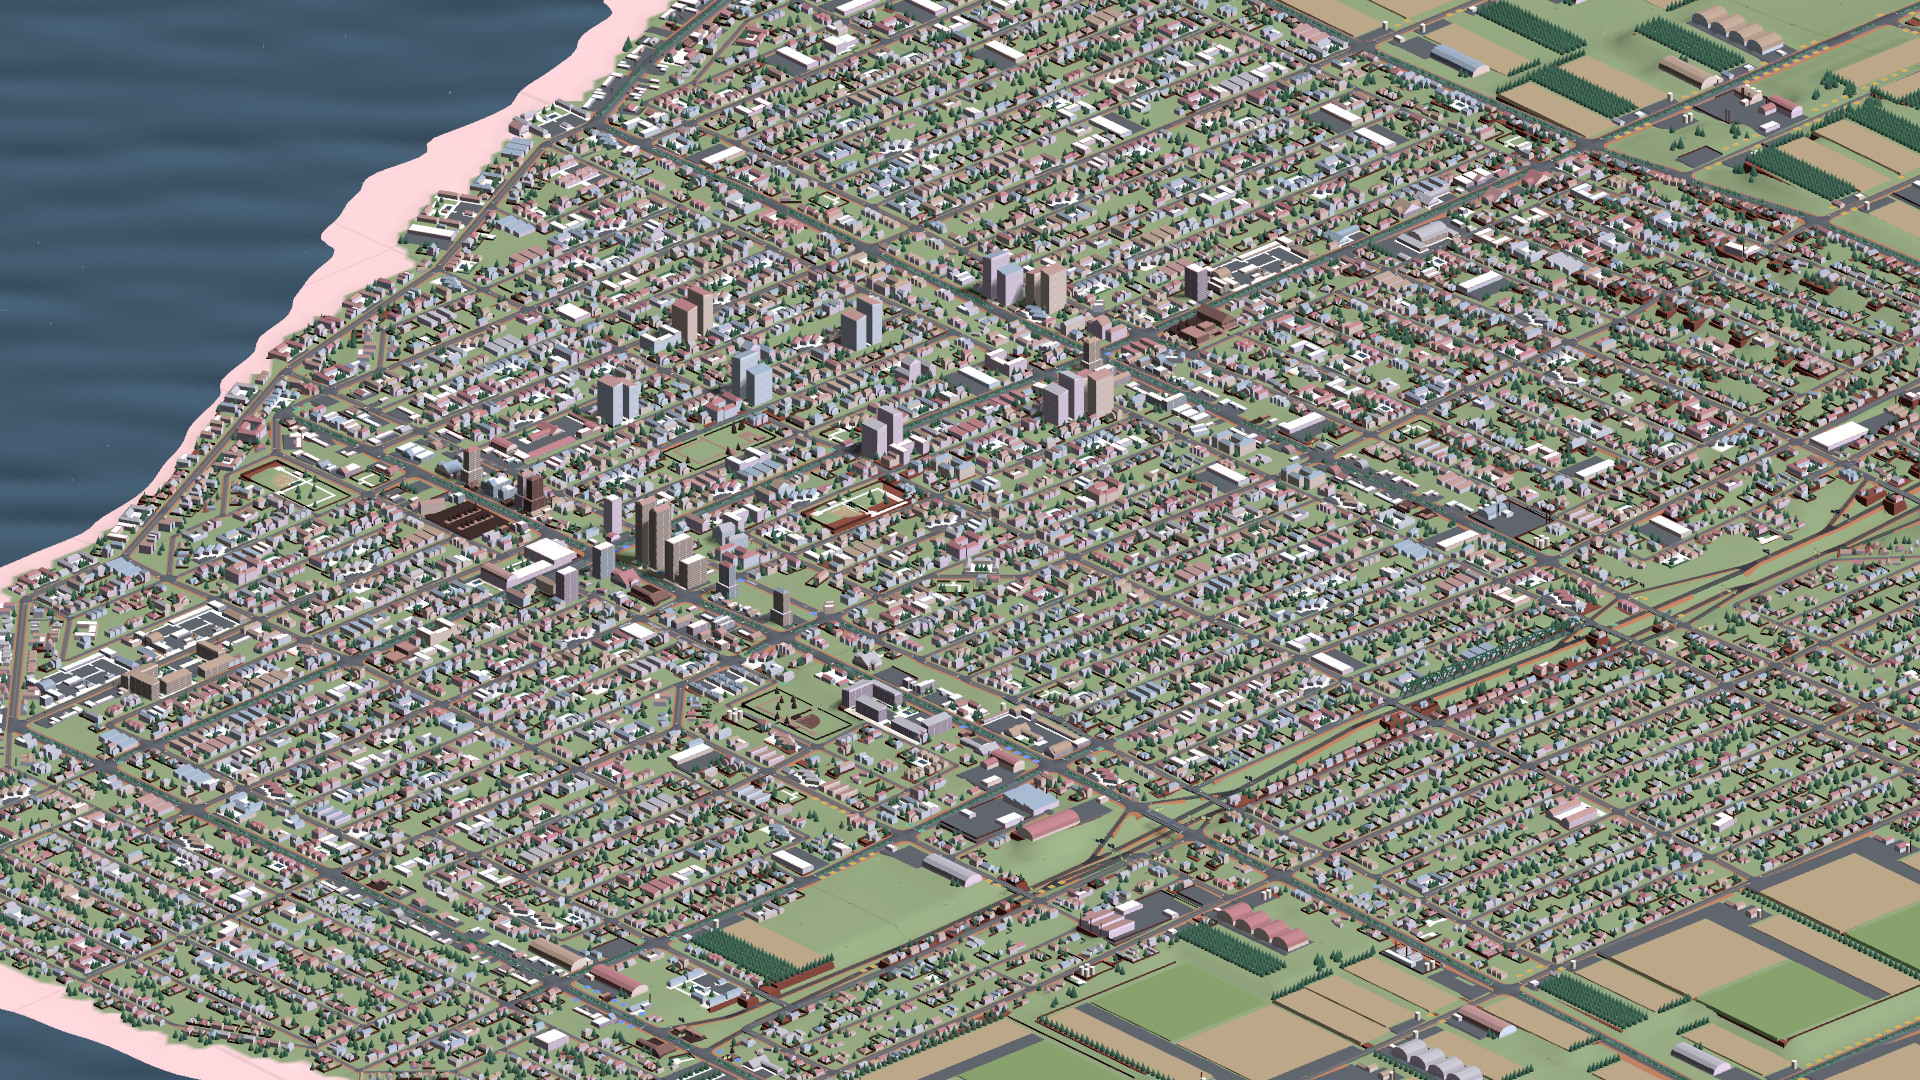 Displaying many buildings at once. Instanced rendering dramatically improves performance.